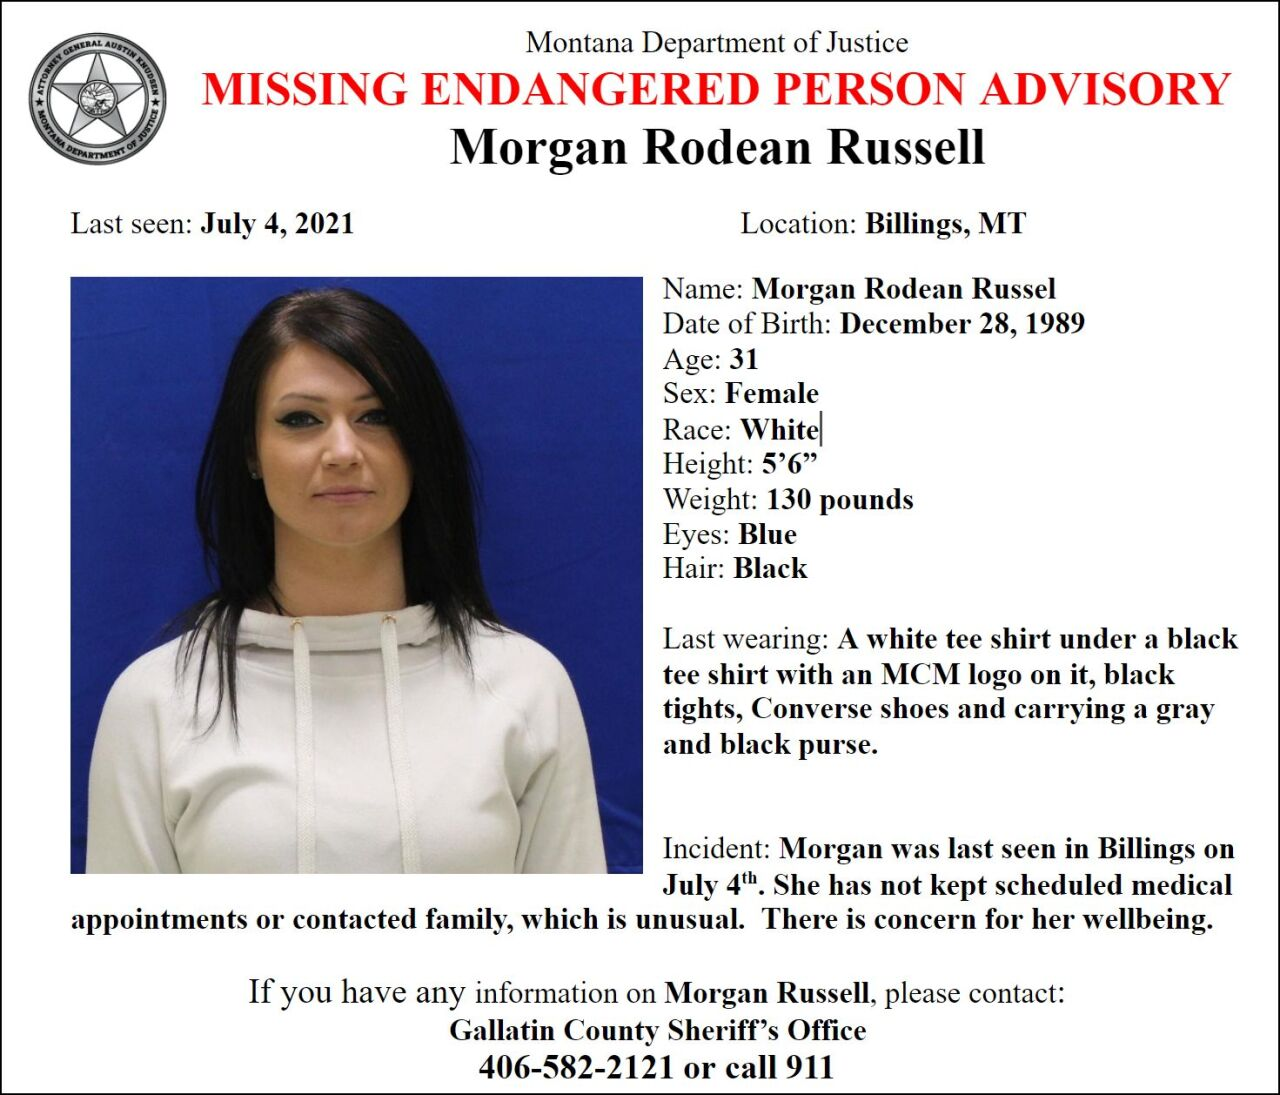 Missing/Endangered Person Advisory for Morgan Russell